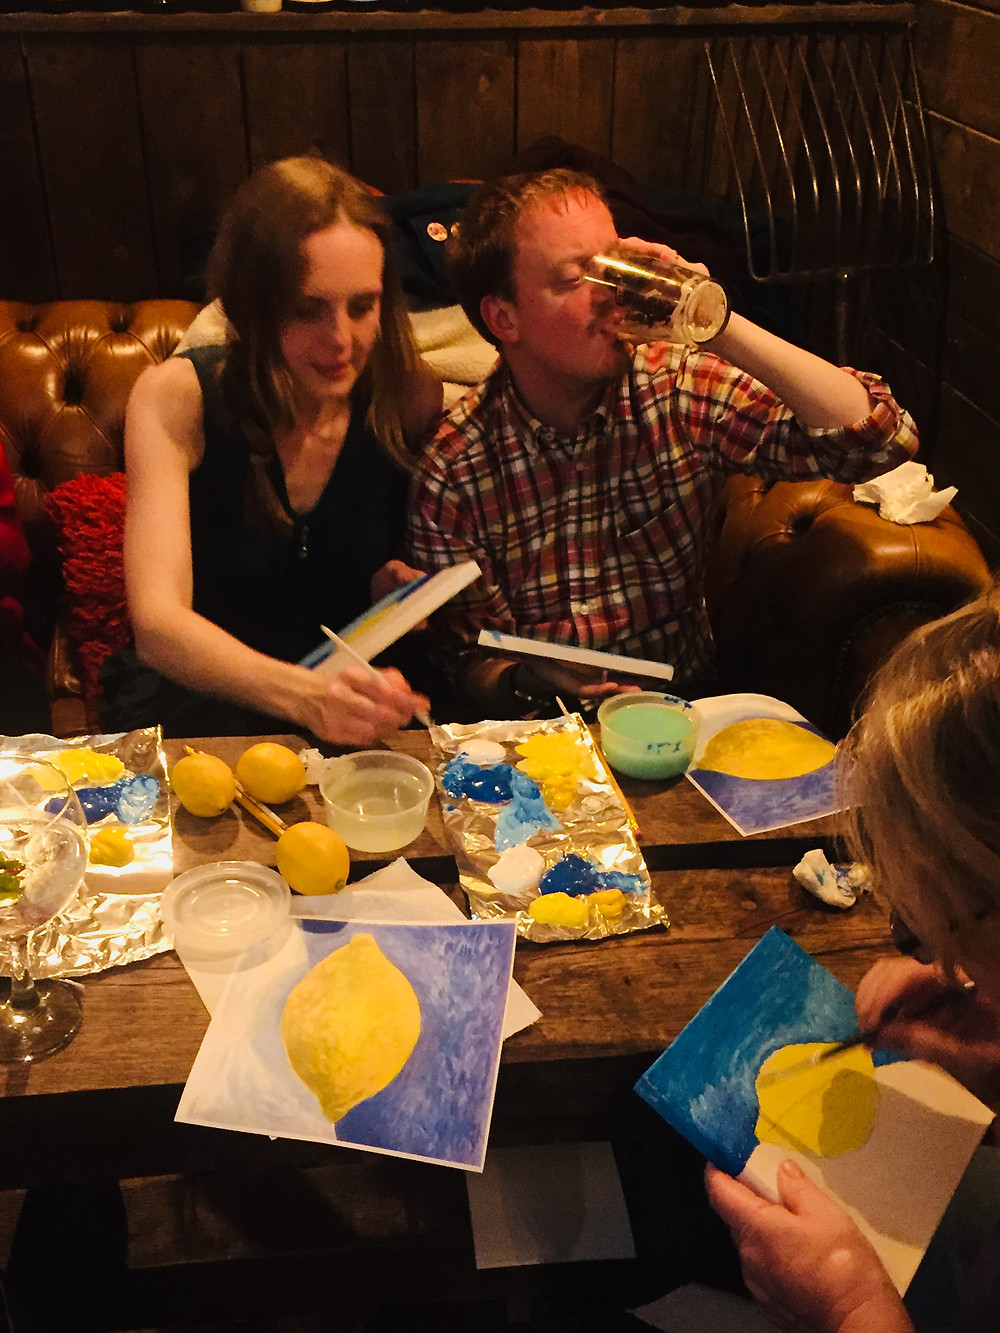 Painting lemons drinking beer at art club in the pub